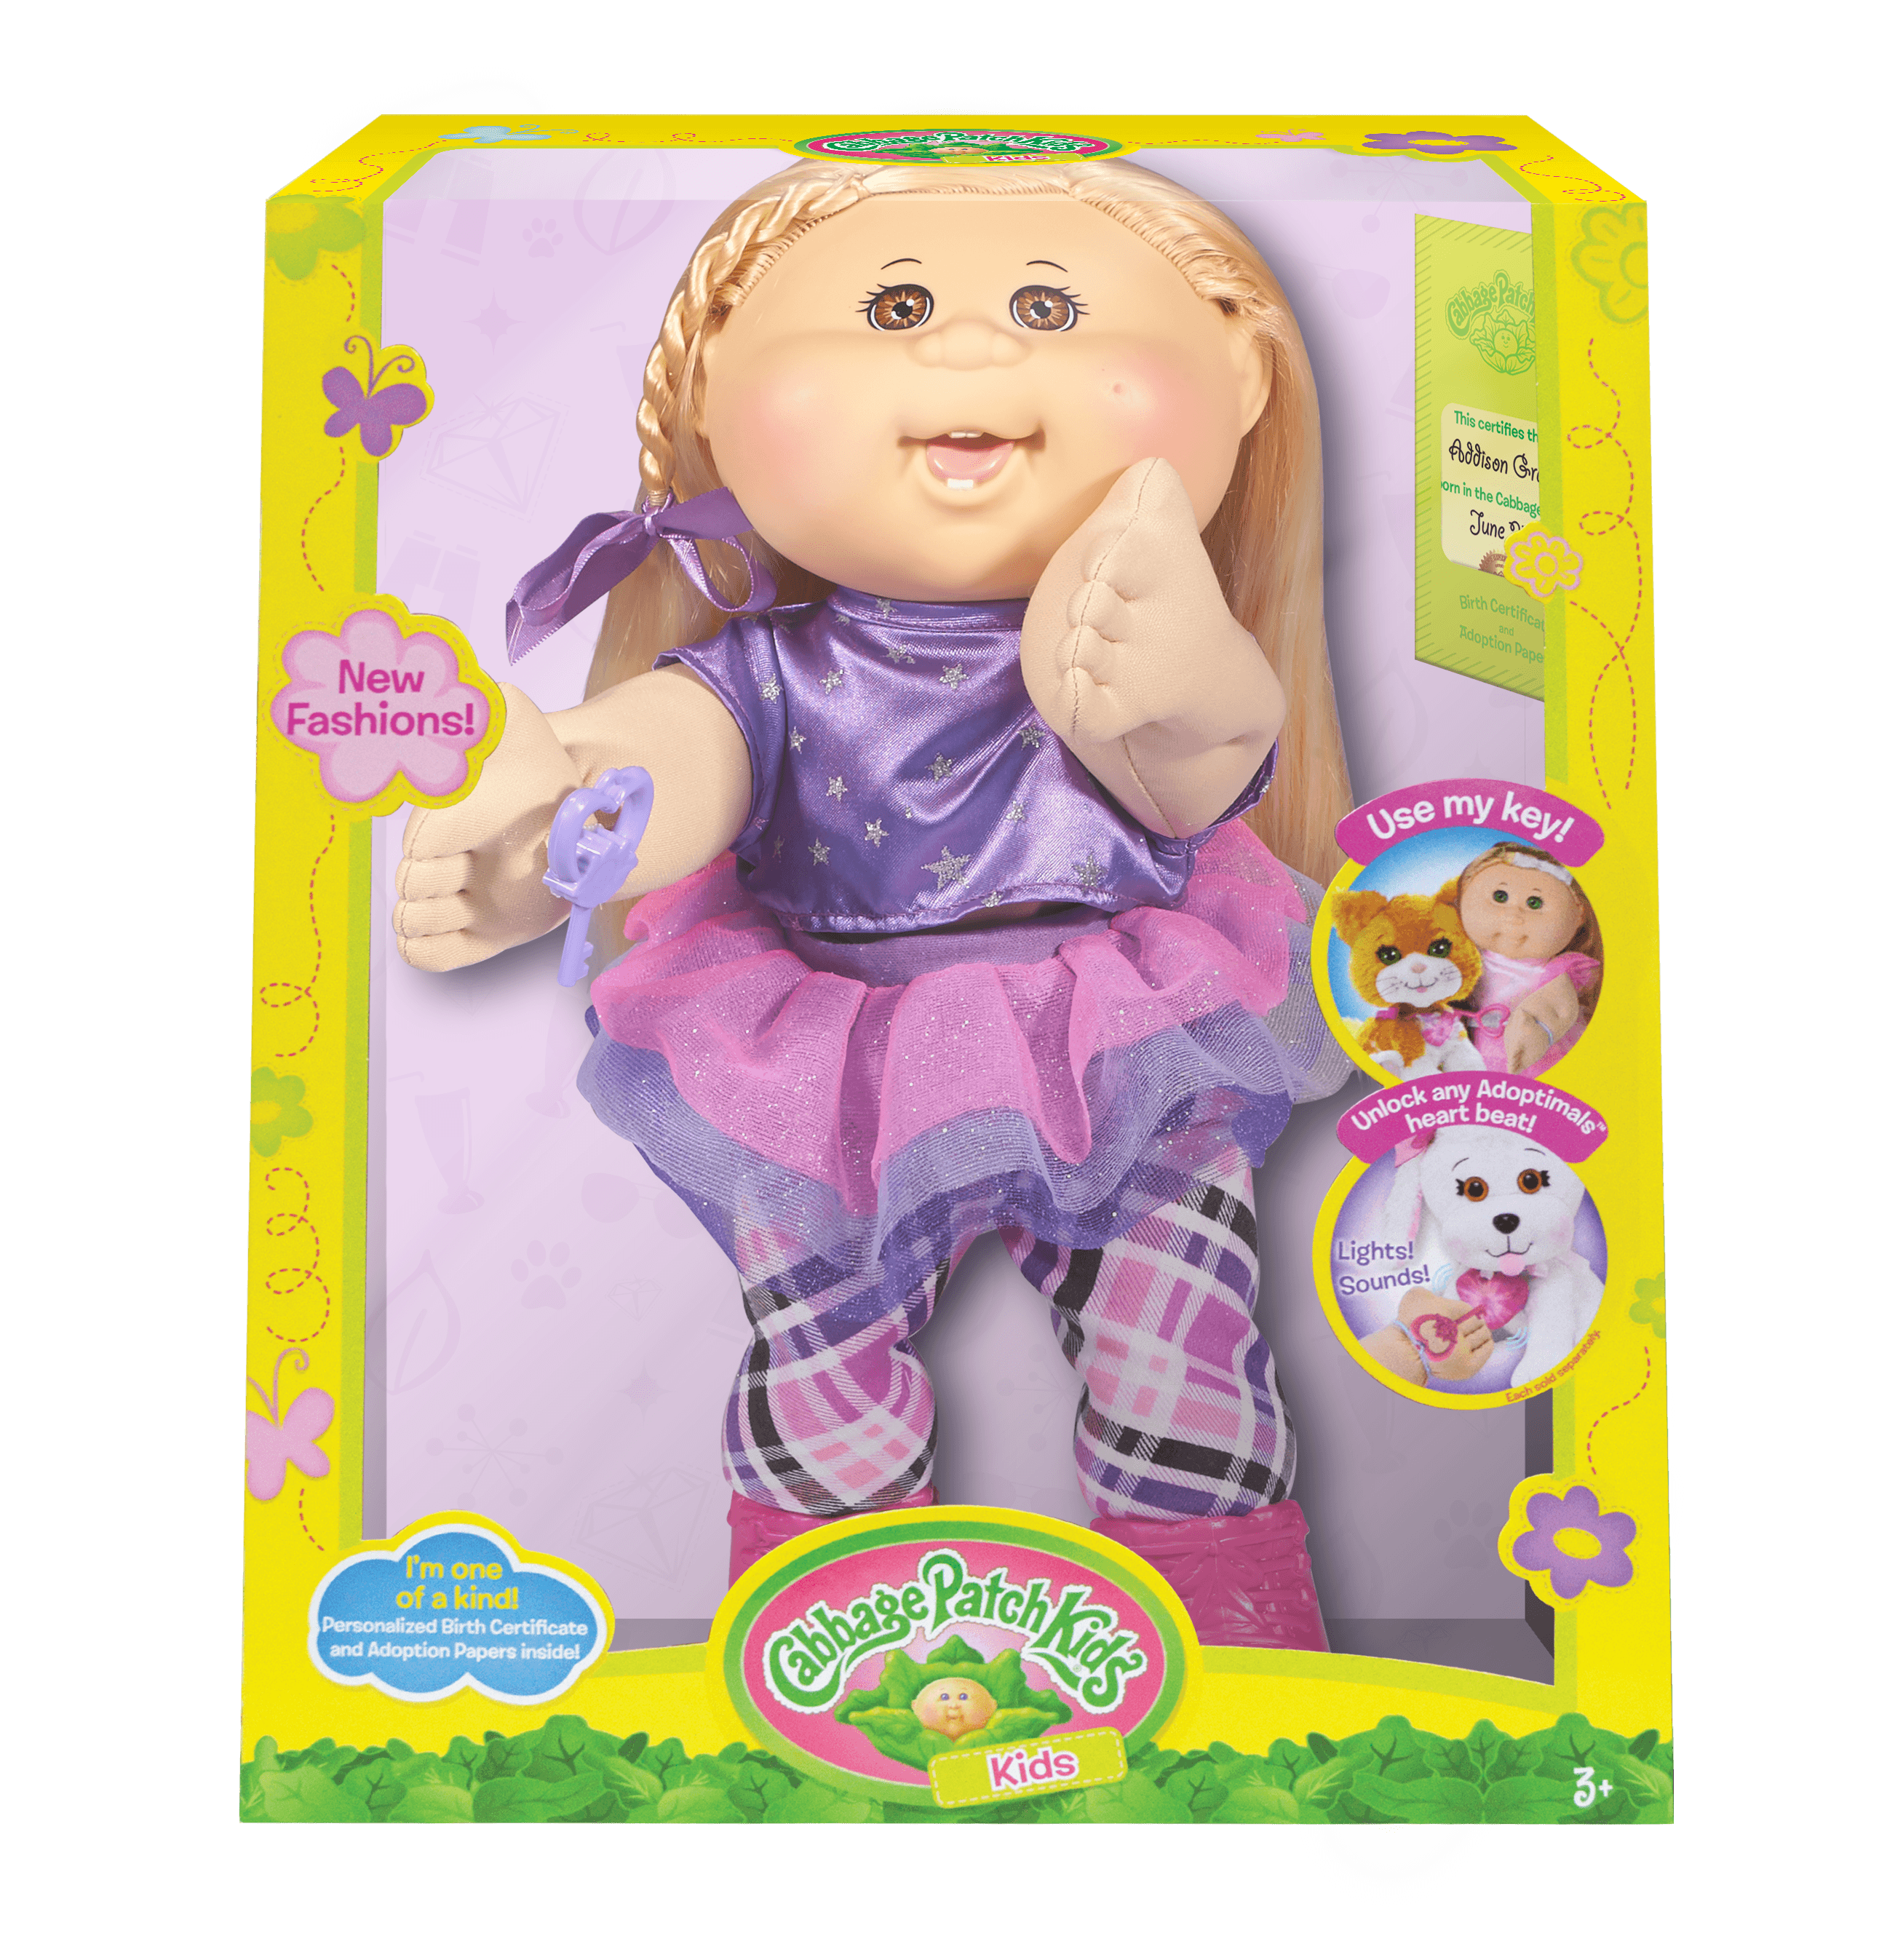 Cabbage Patch Kids Rocker Doll, Blonde Hair Brown Eye Girl by Wicked Cool Toys